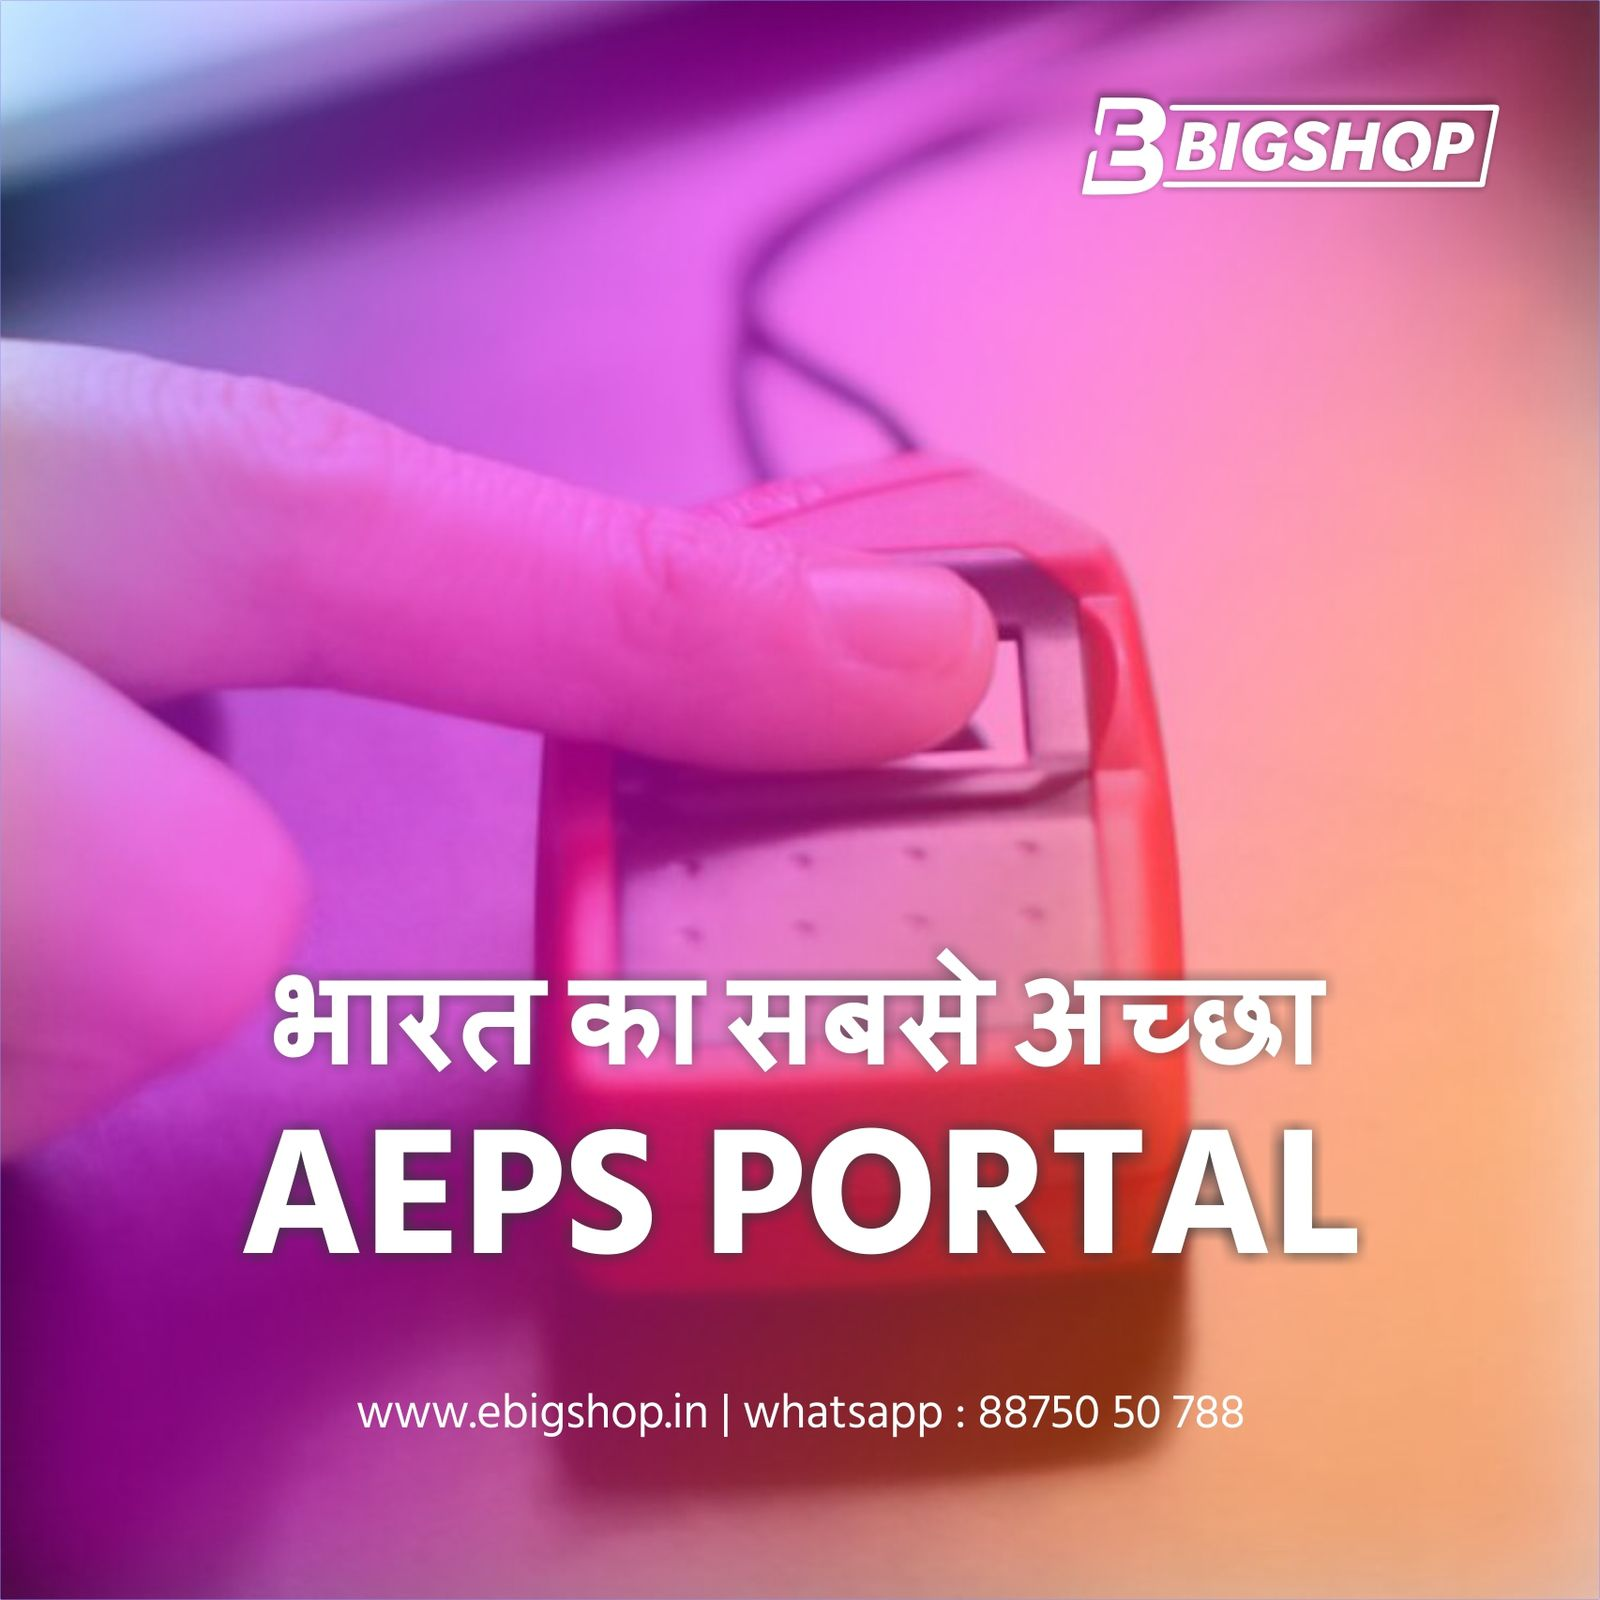 ebigshop india provide aeps, money transfer, bill payment, pan card service, fastag, insurance, cash withdrawal, cash deposit and many more digital & finance service in rural area or India. Ebigshop known as a best retailer network without any cost. Ebigshop always provide best support for retailer and distributors. ebigshop take gurantee for his retailer's money. move to bank facilities are always open including holidya and festival.